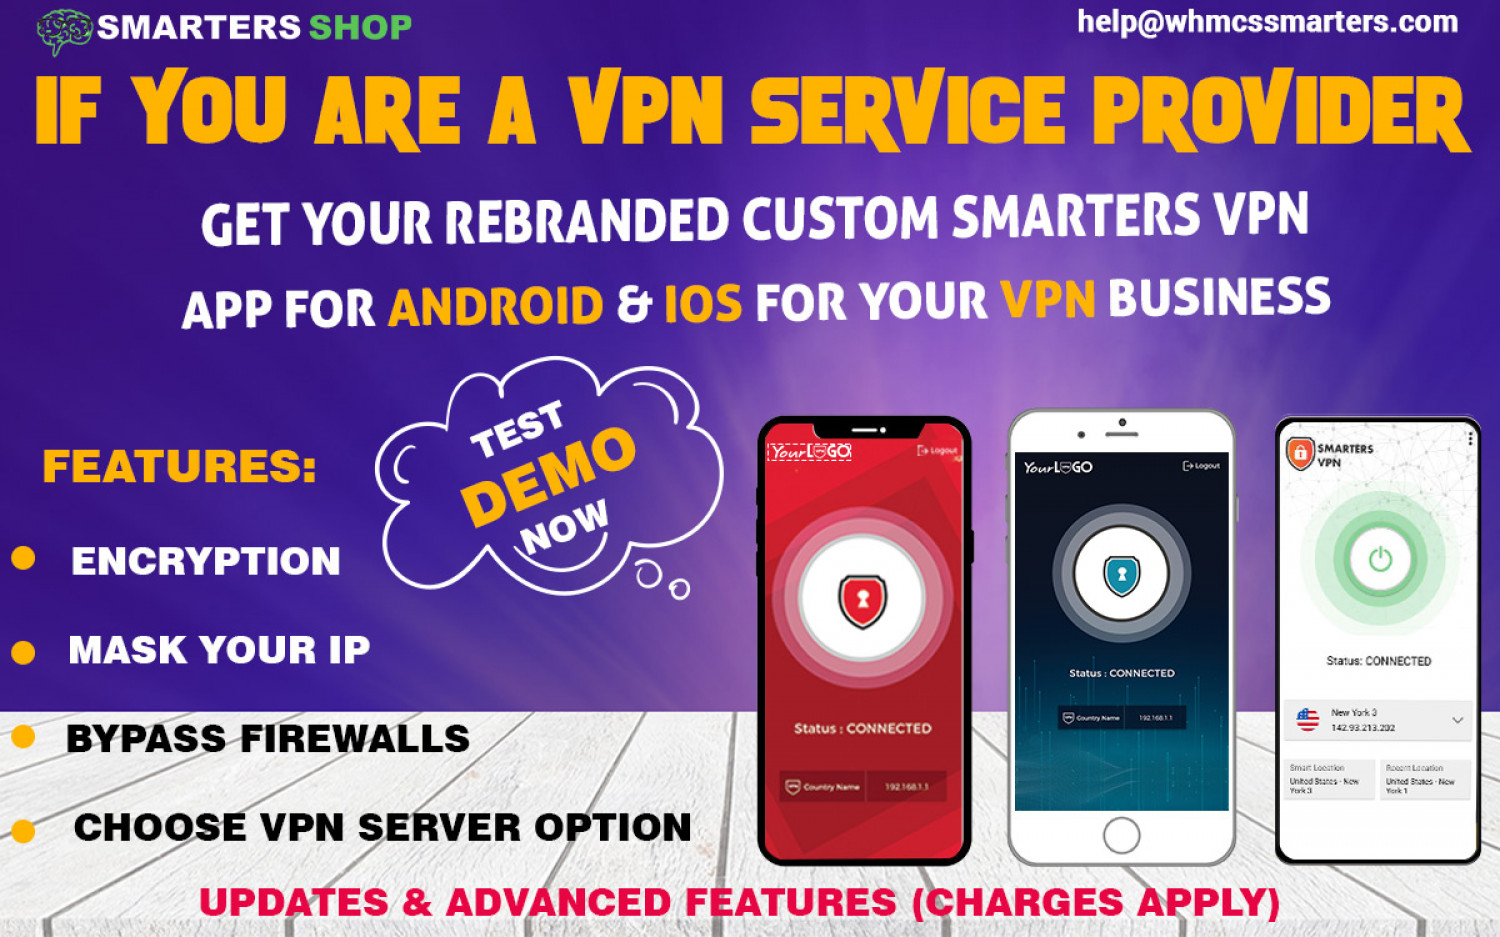 CUSTOM SMARTERS VPN APP FOR ANDROID AND IOS Infographic